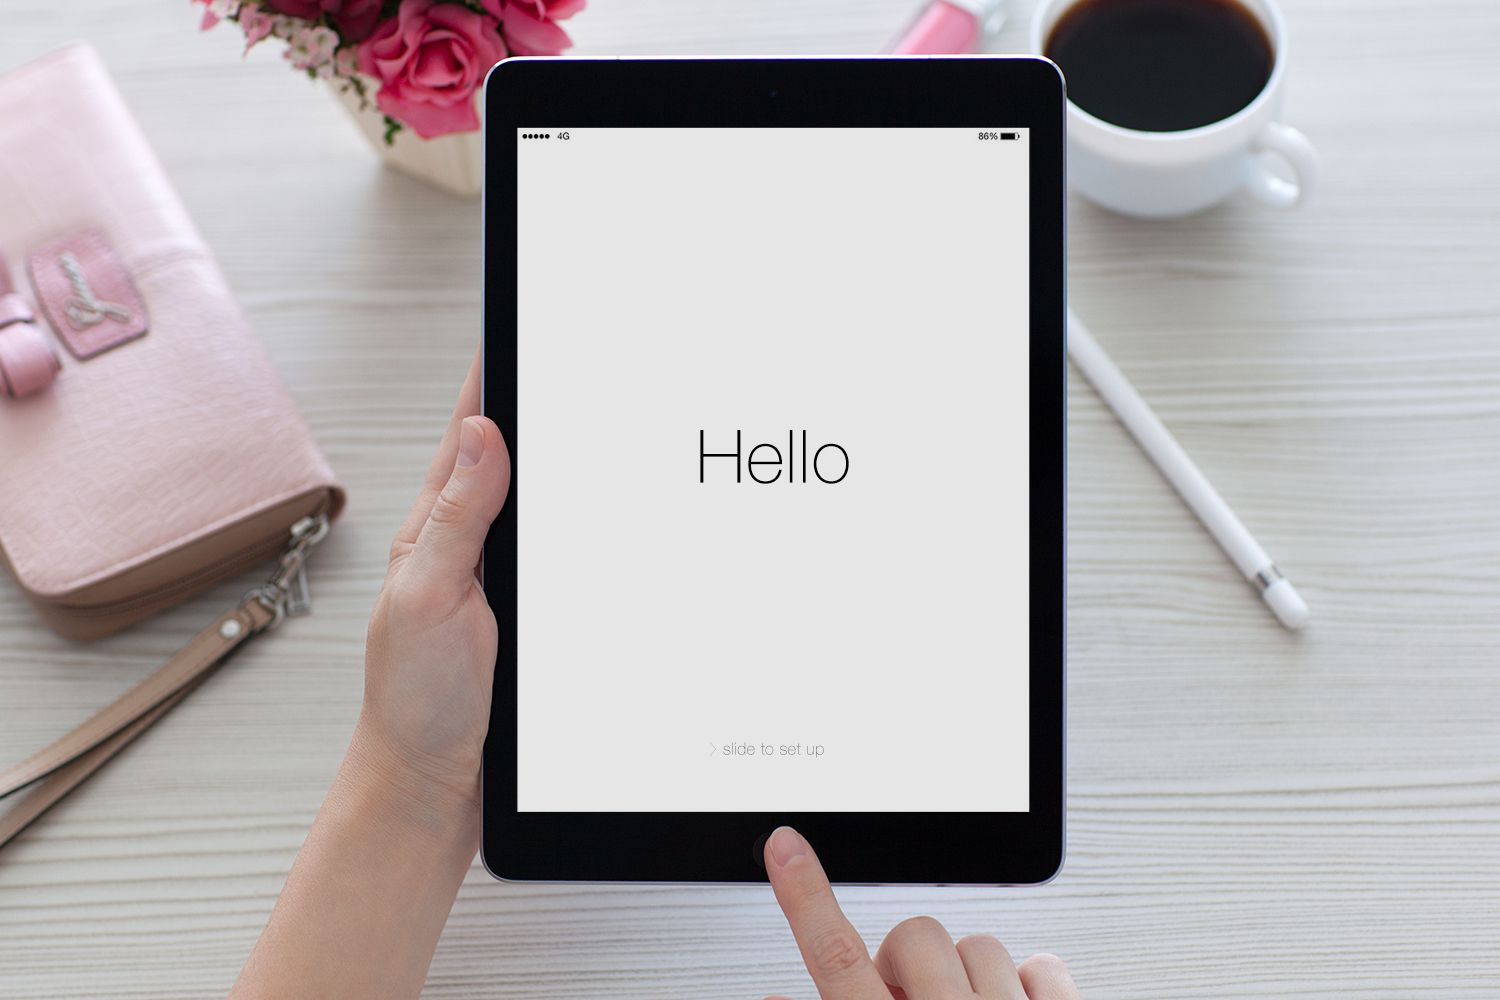 How To Fix An Ipad Stuck At Hello Or Slide To Upgrade